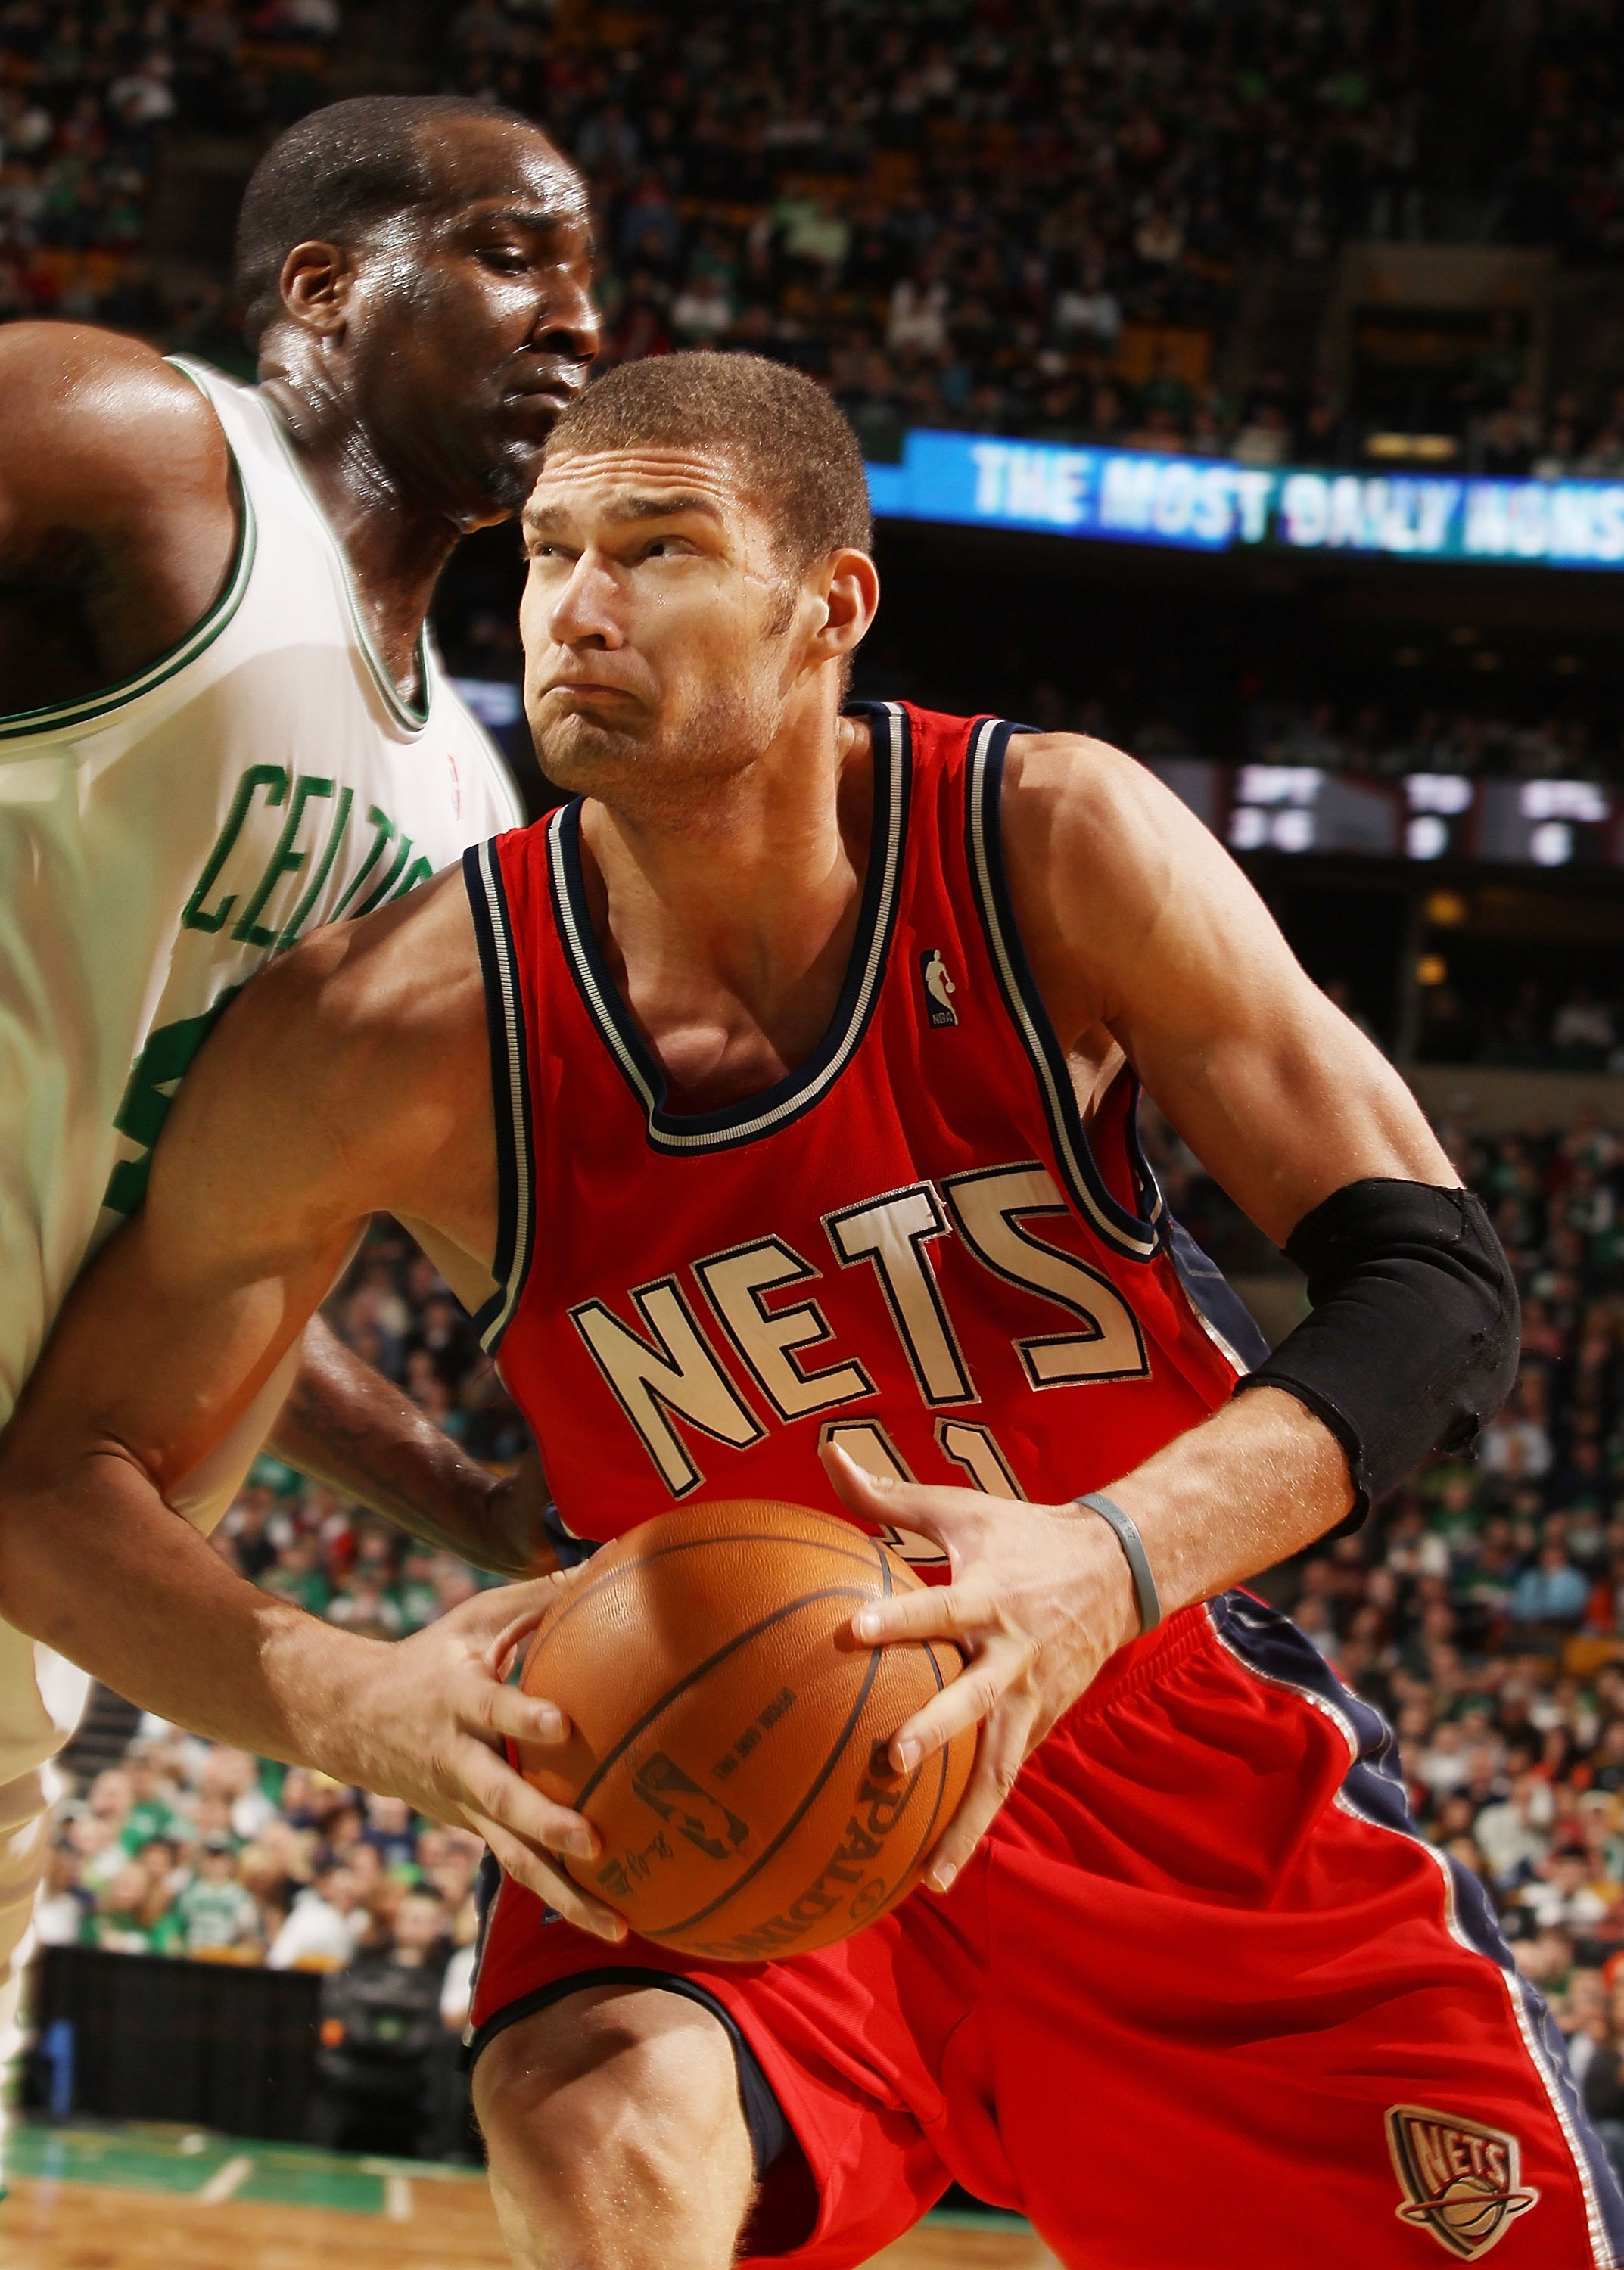 BOSTON - FEBRUARY 27:  Brook Lopez #11 of the New Jersey Nets heads for the net as Kendrick Perkins #43 of the Boston Celtics defends at the TD Garden on February 27, 2010 in Boston, Massachusetts. The Nets defeated the Celtics 104-96.  NOTE TO USER: User